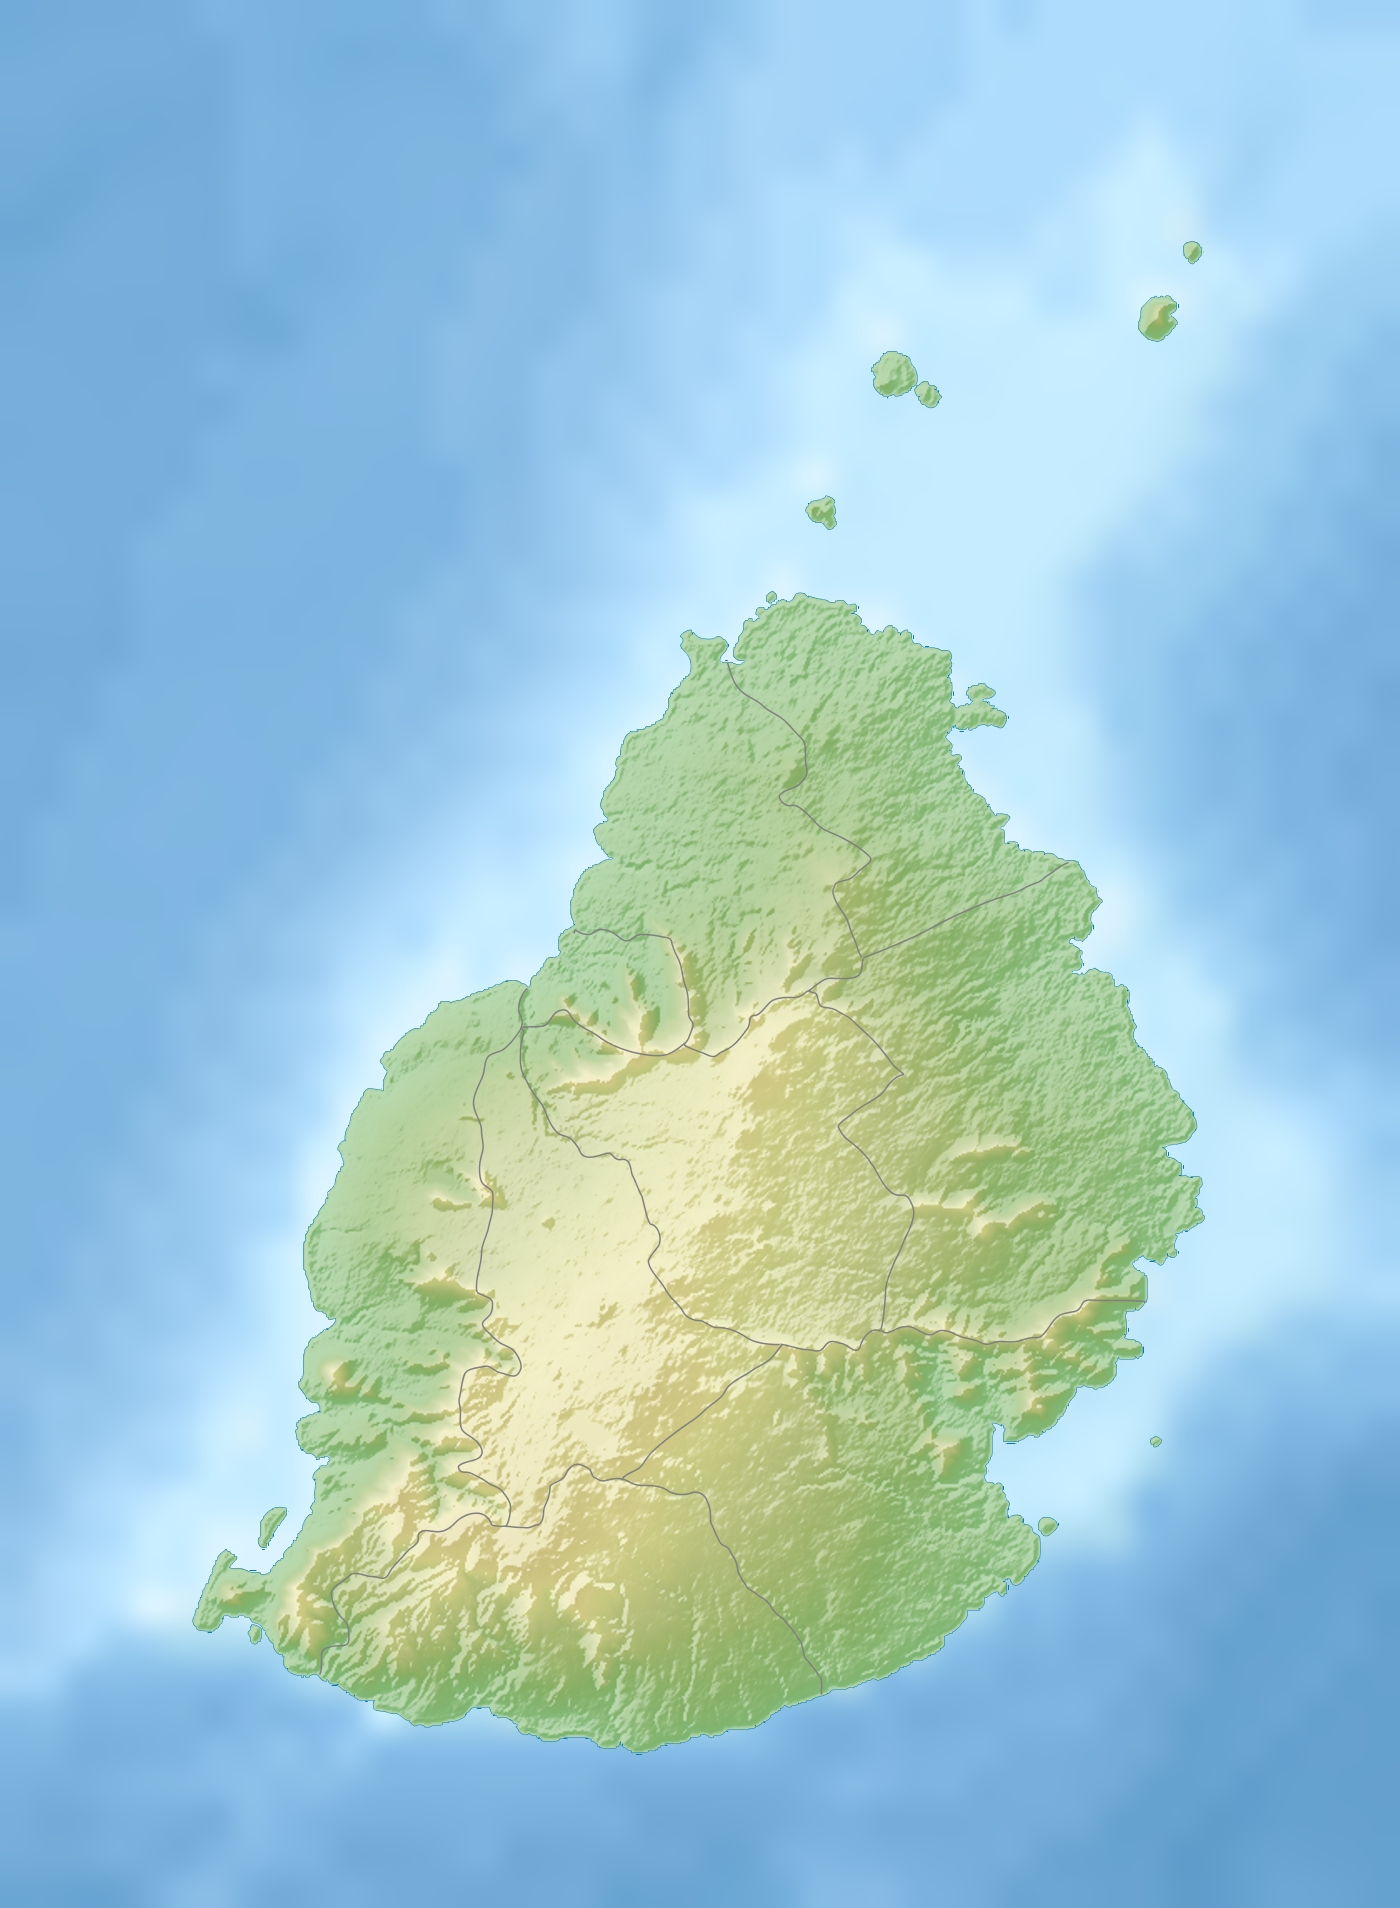 Datei:Mauritius relief location map.jpg – Wikipedia